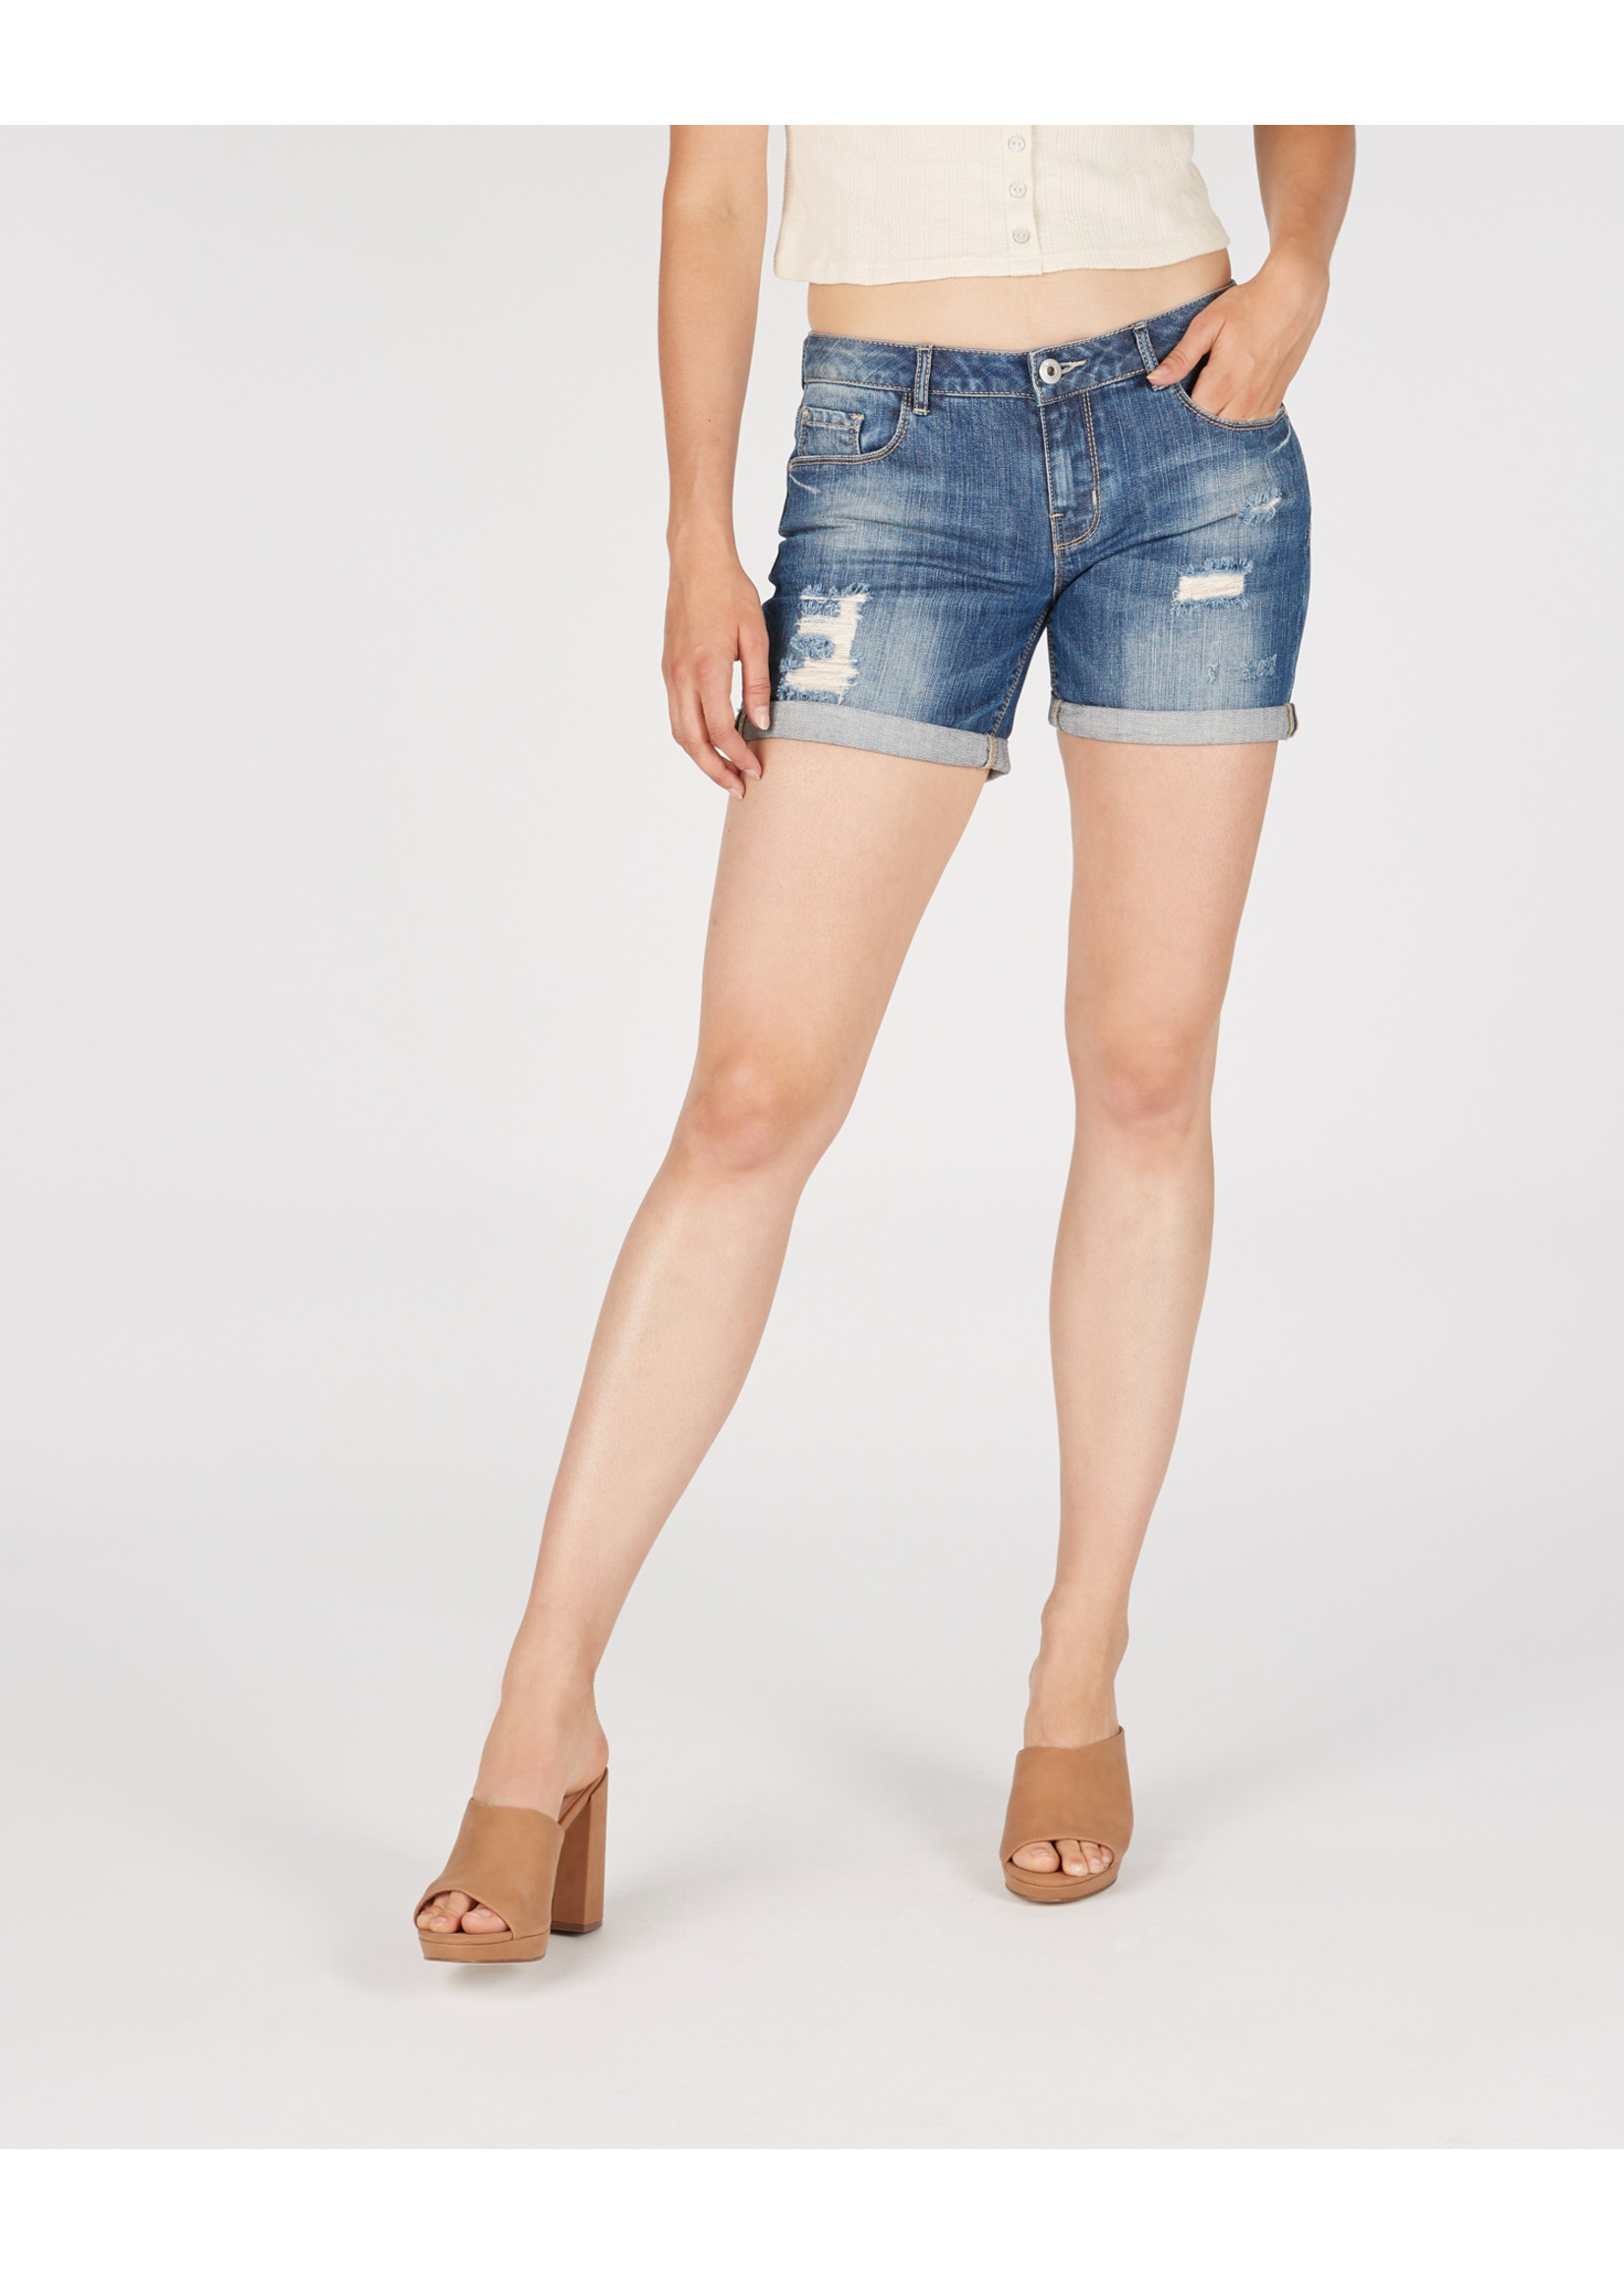 Numero Brands Boyfriend Short - Mid Rise - Roll Up Hem